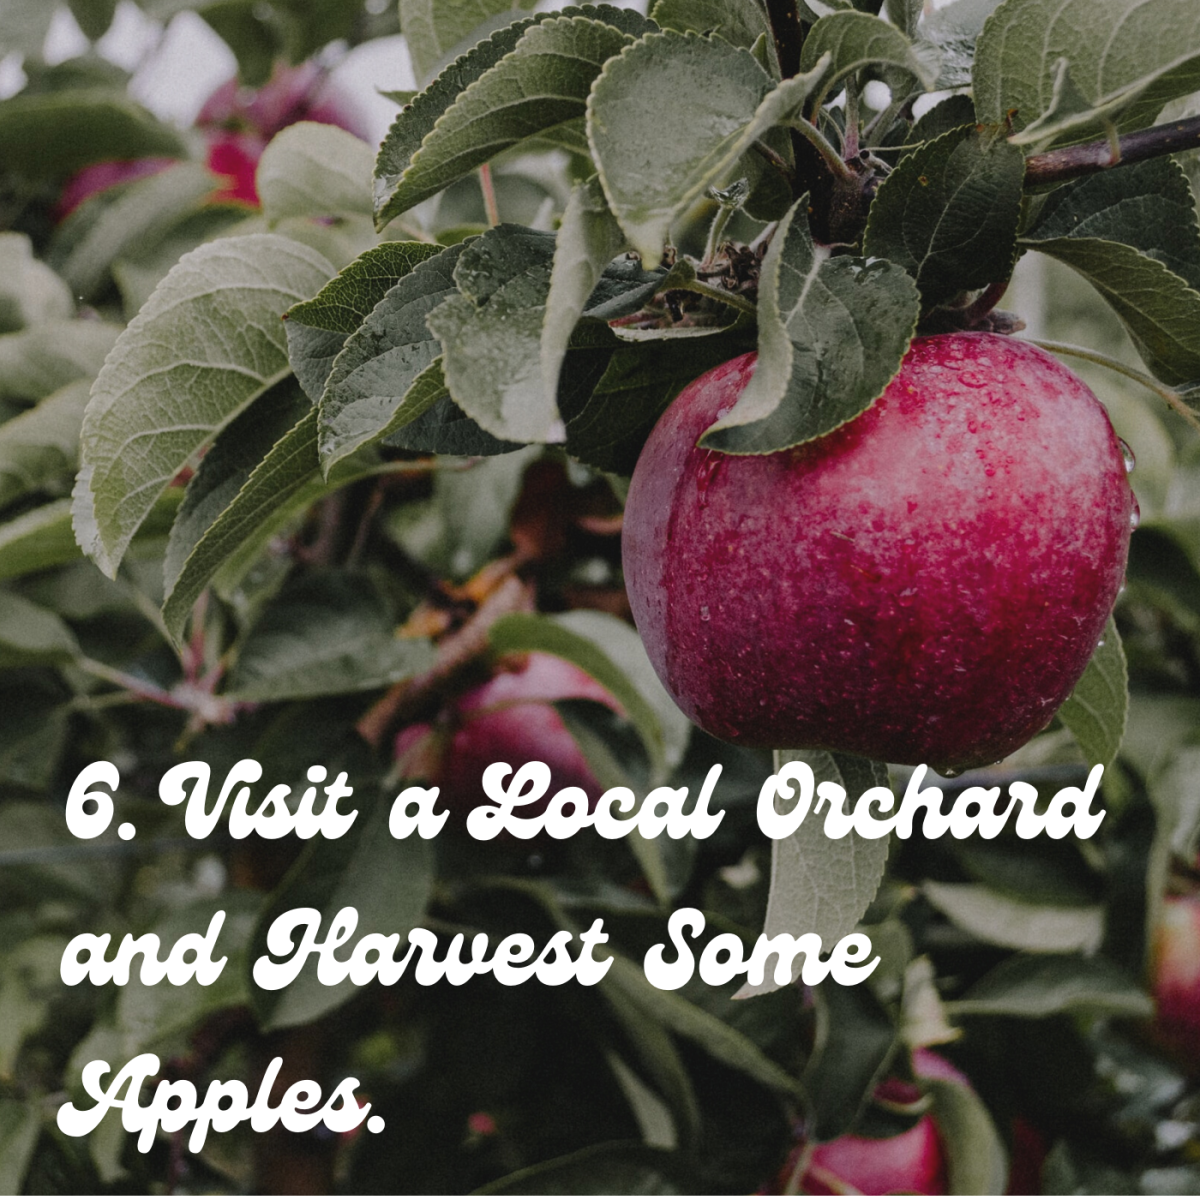 6. Visit a local orchard and harvest some apples.